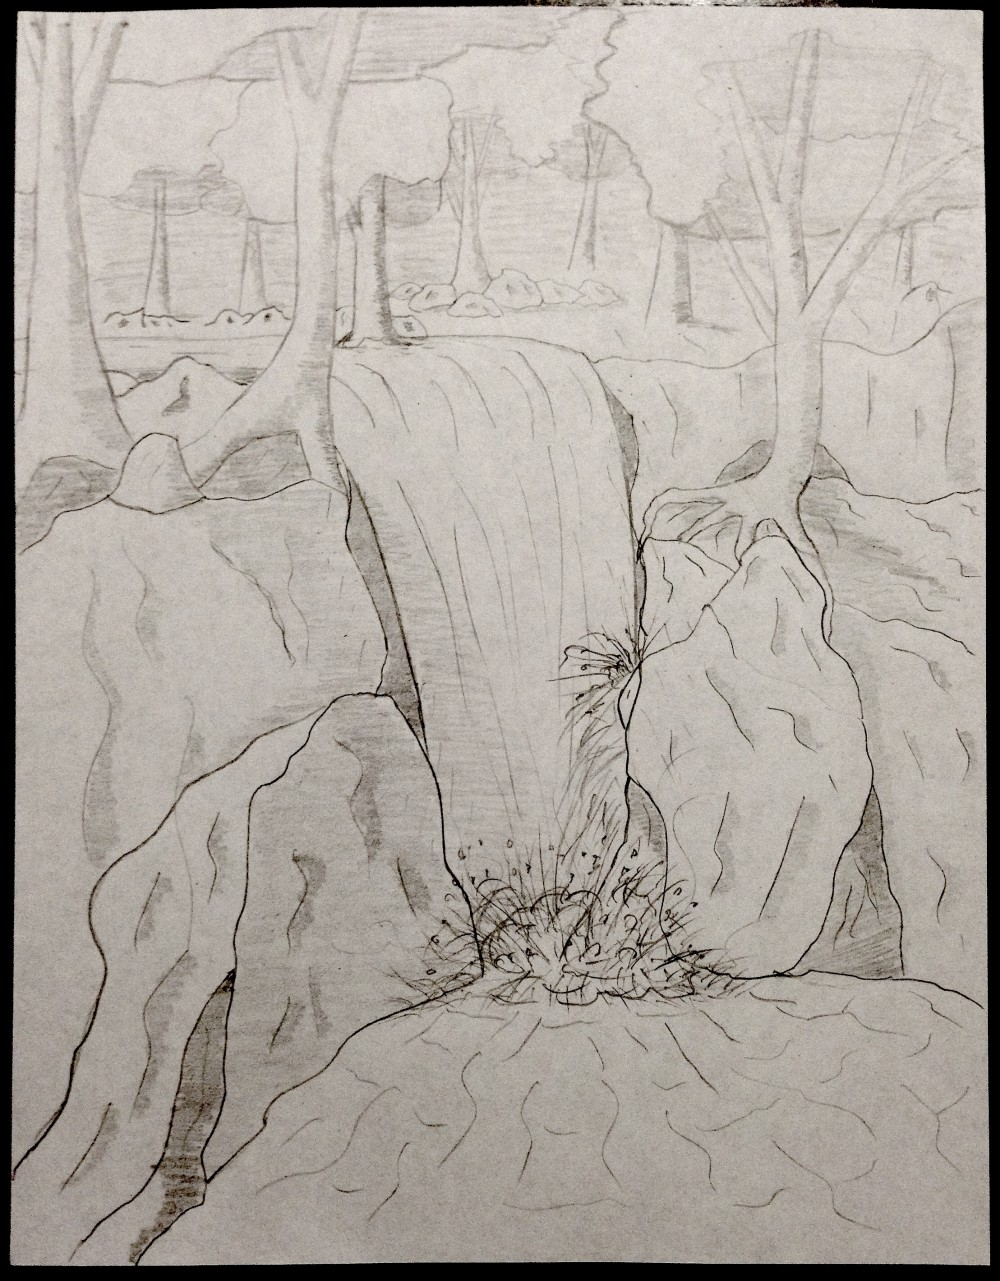 Drawing No. 2 – Waterfall in the Forest